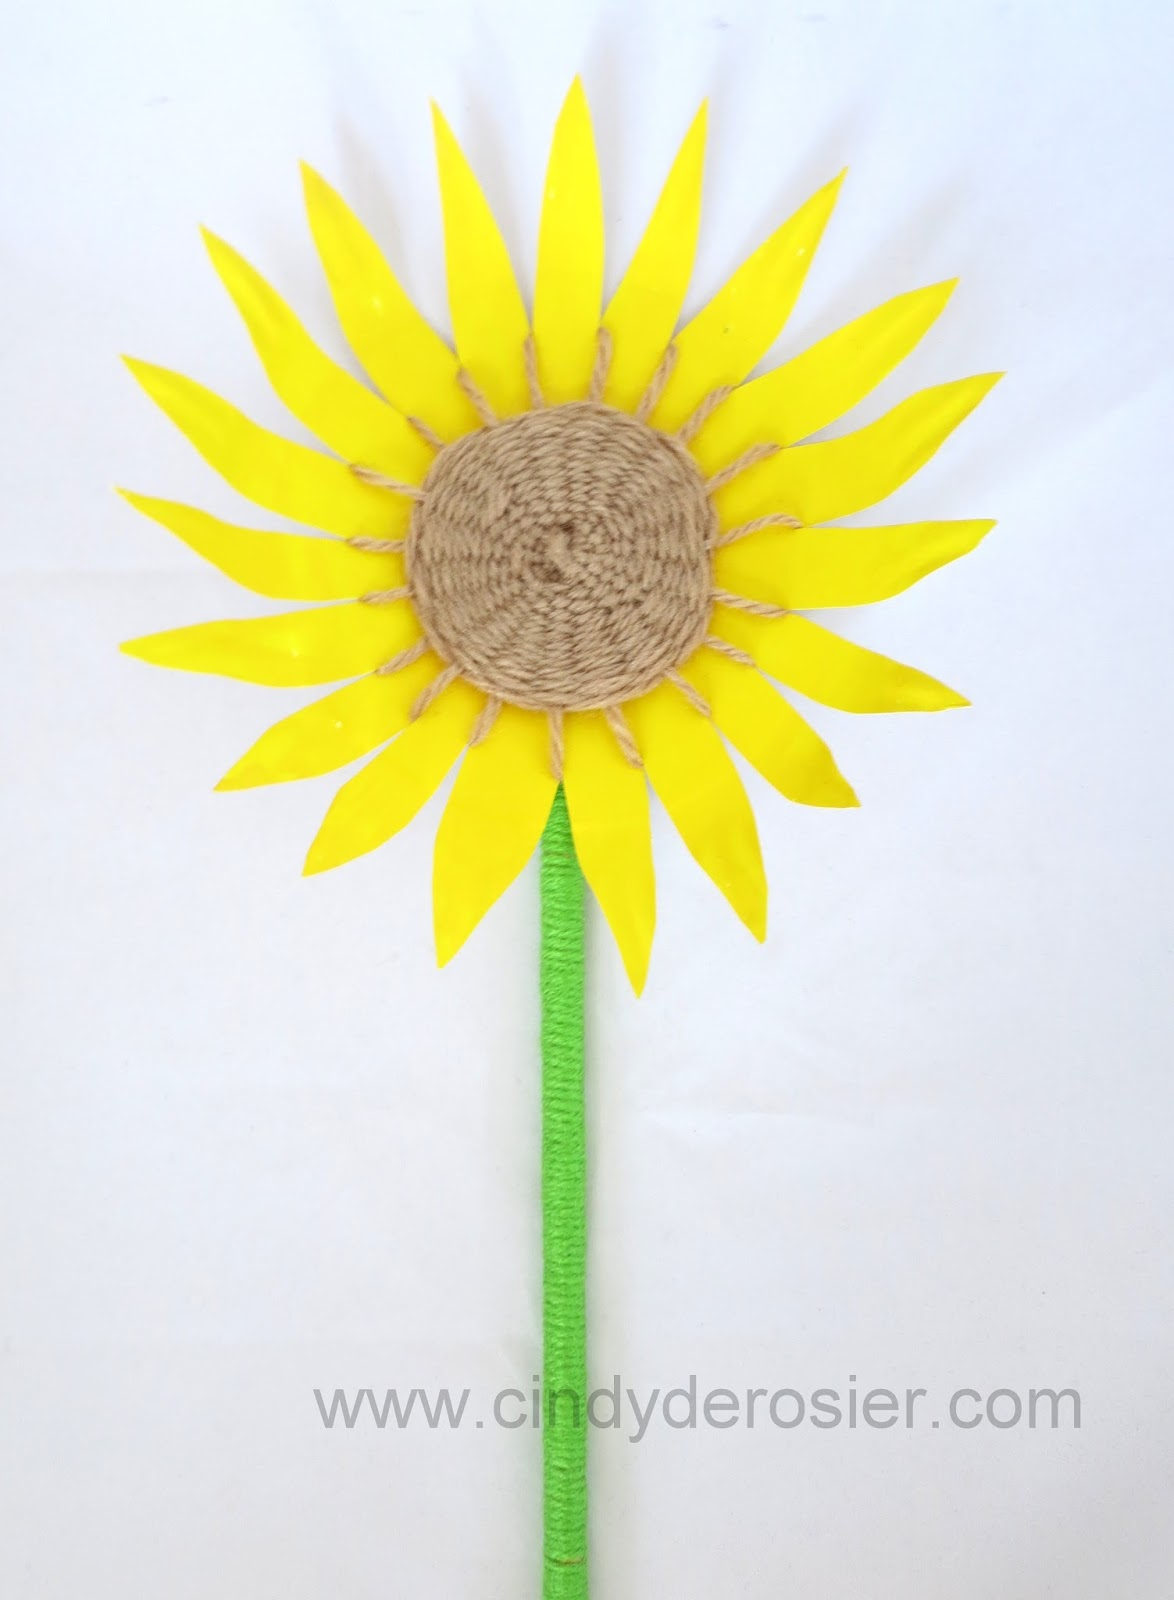 ... Formarou0027s book Paper Fun Mania called Paper Plate Weaving. I made some changes to turn it into a beautiful summery sunflower. This easy portable craft ...  sc 1 st  Cindy deRosier & Cindy deRosier: My Creative Life: Paper Plate Sunflower